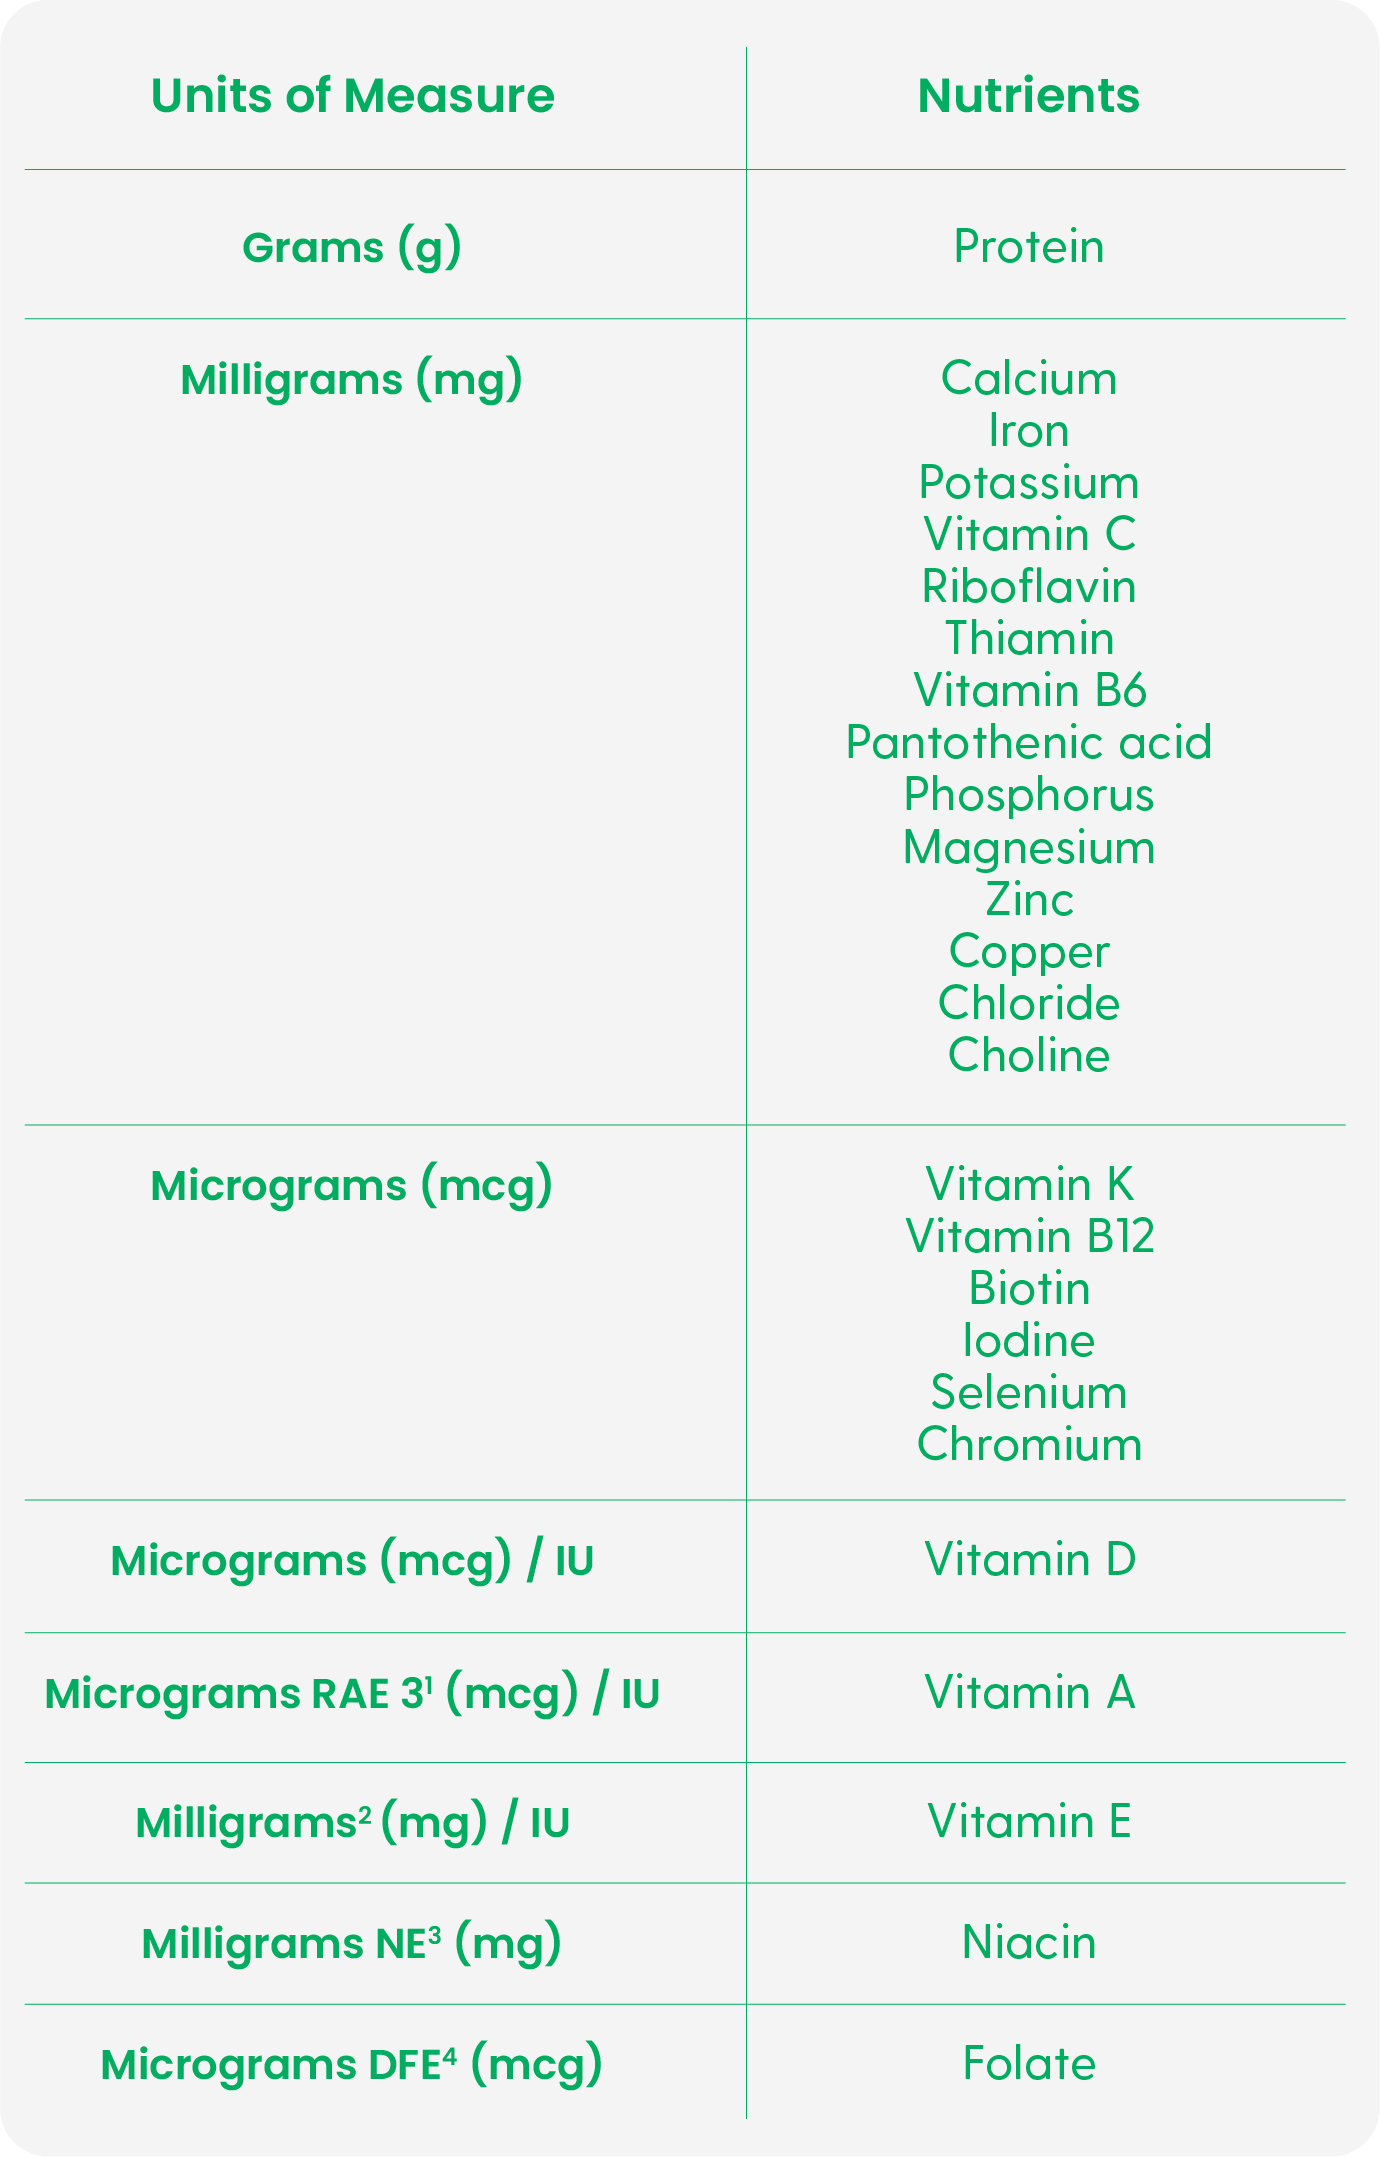 Units of measurement - Your Go-to Handbook of FDA's Labeling Requirements For Dietary Supplements